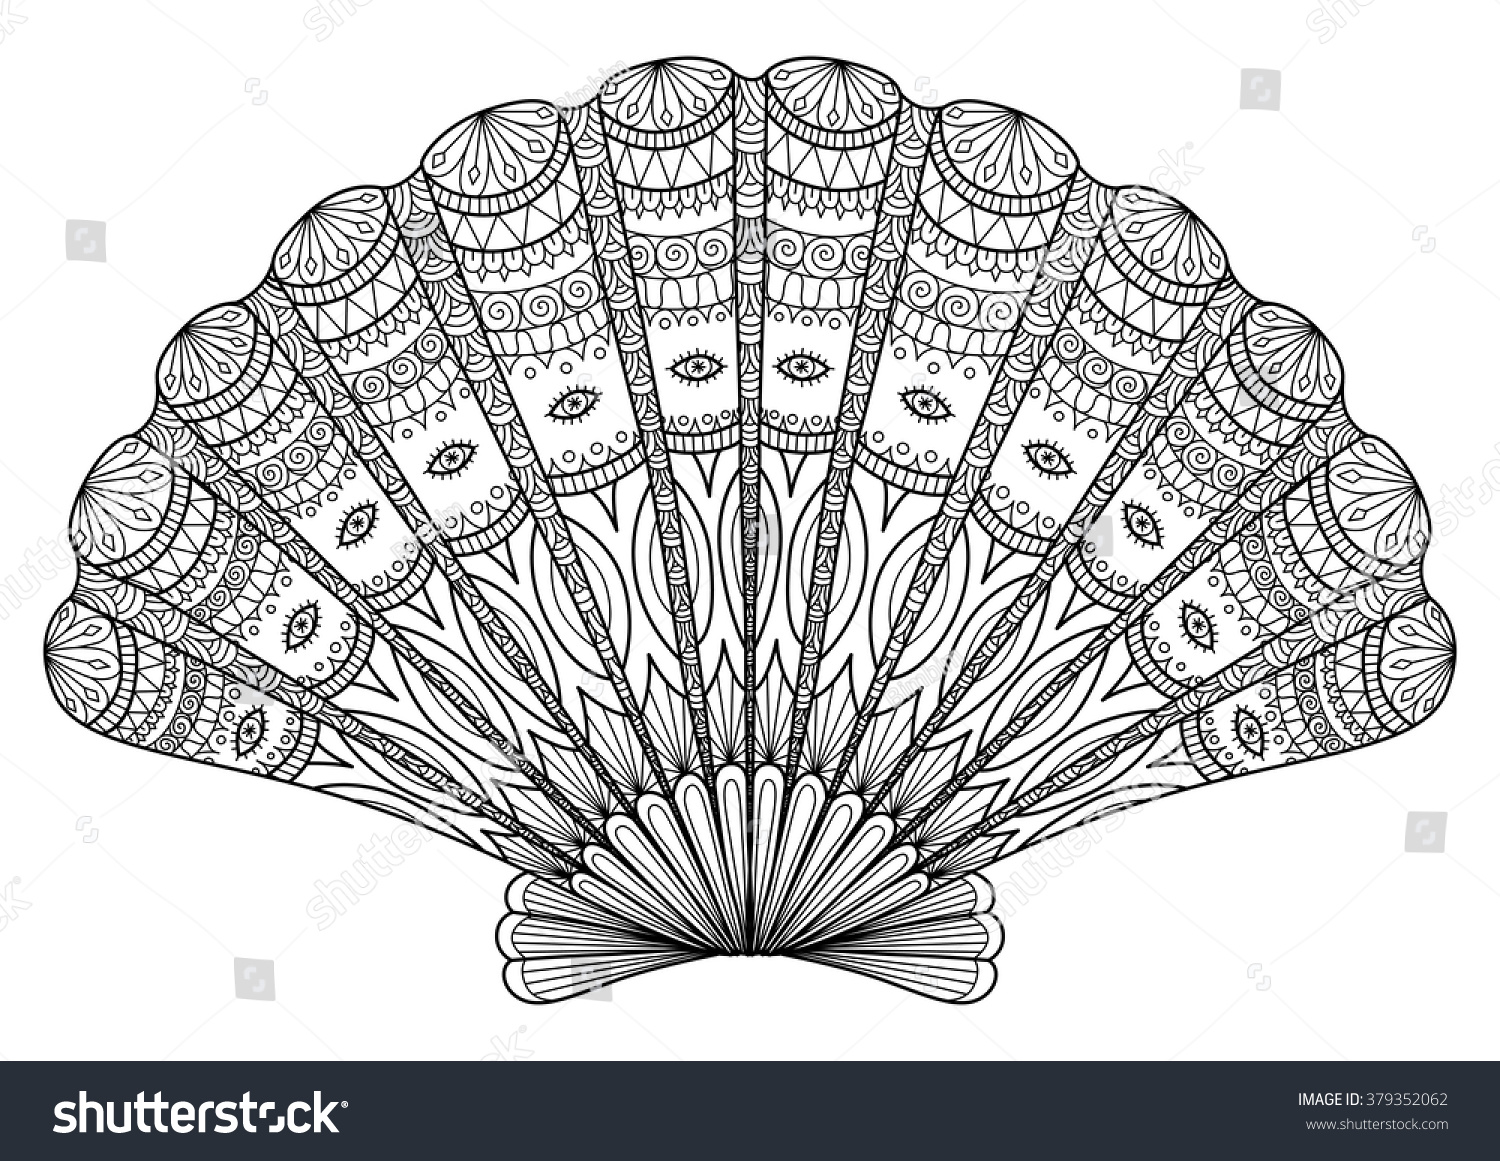 Seashell Line Art For Coloring Book T Shirt Design Effect Logo Tattoo And